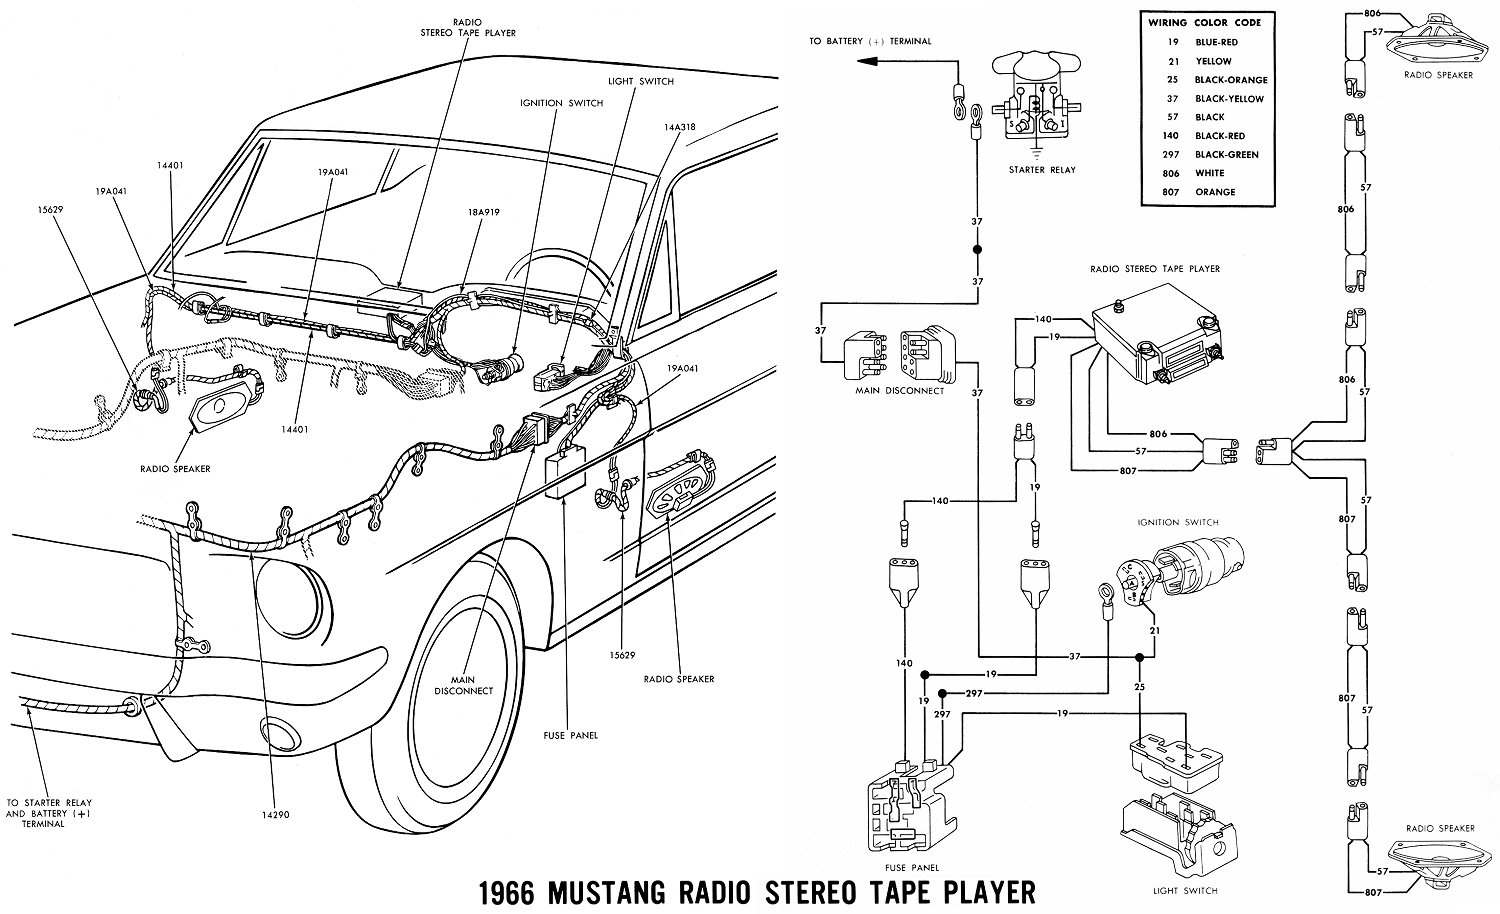 hight resolution of 1966 mustang wiring diagrams average joe restoration 98 mustang fuse box diagram 66 mustang fuse diagram